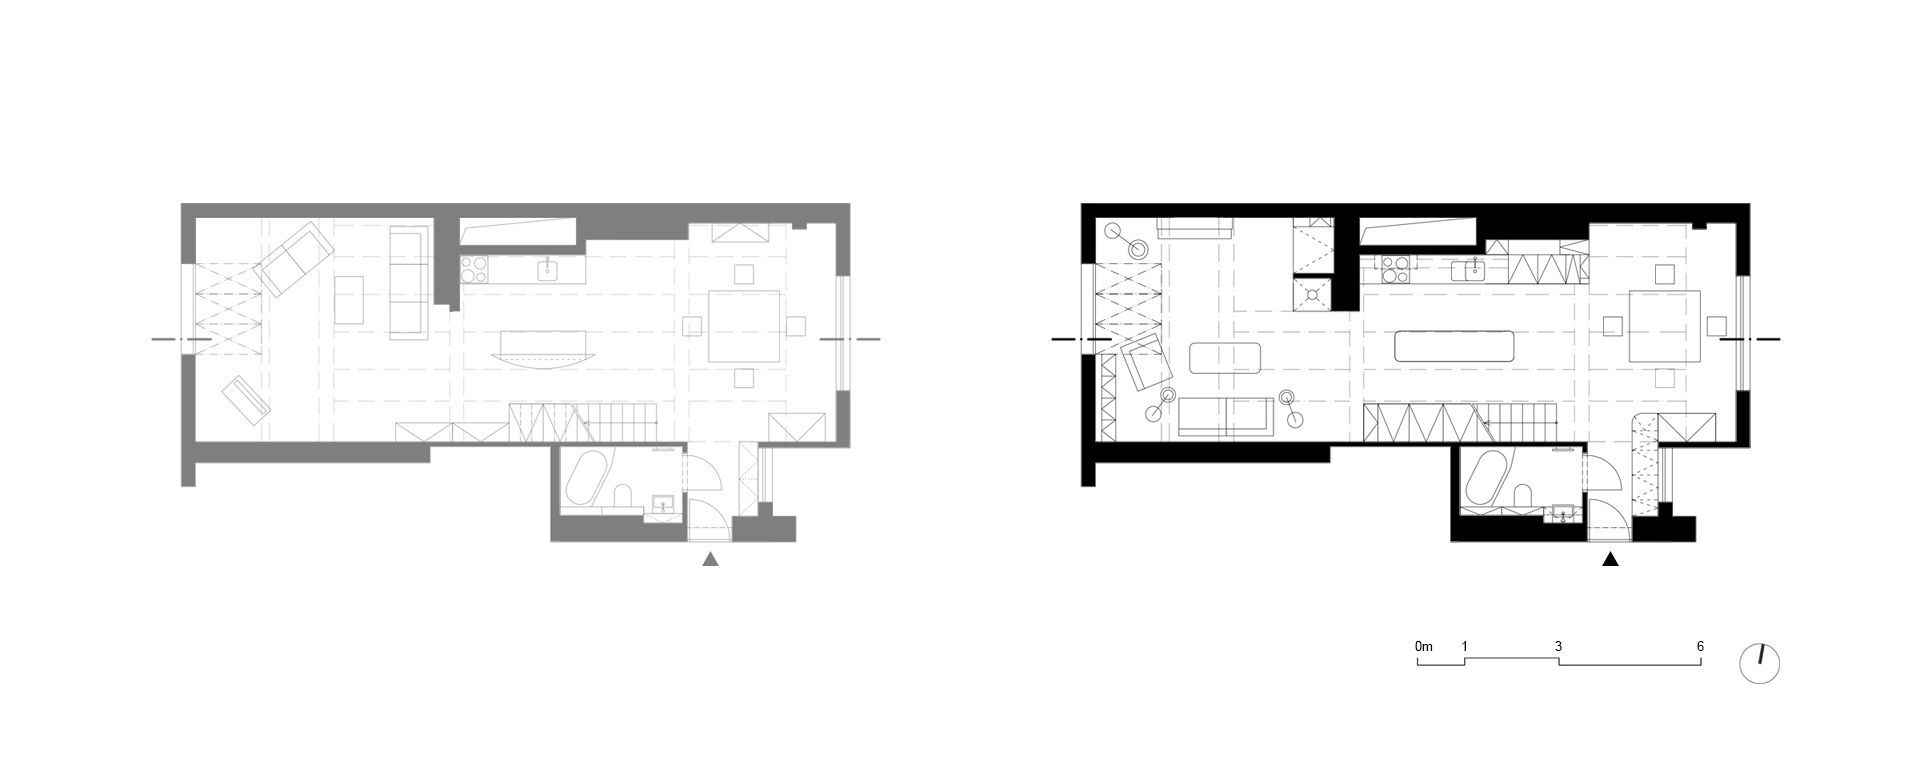 Scheme of changes of the first floor of the apartment